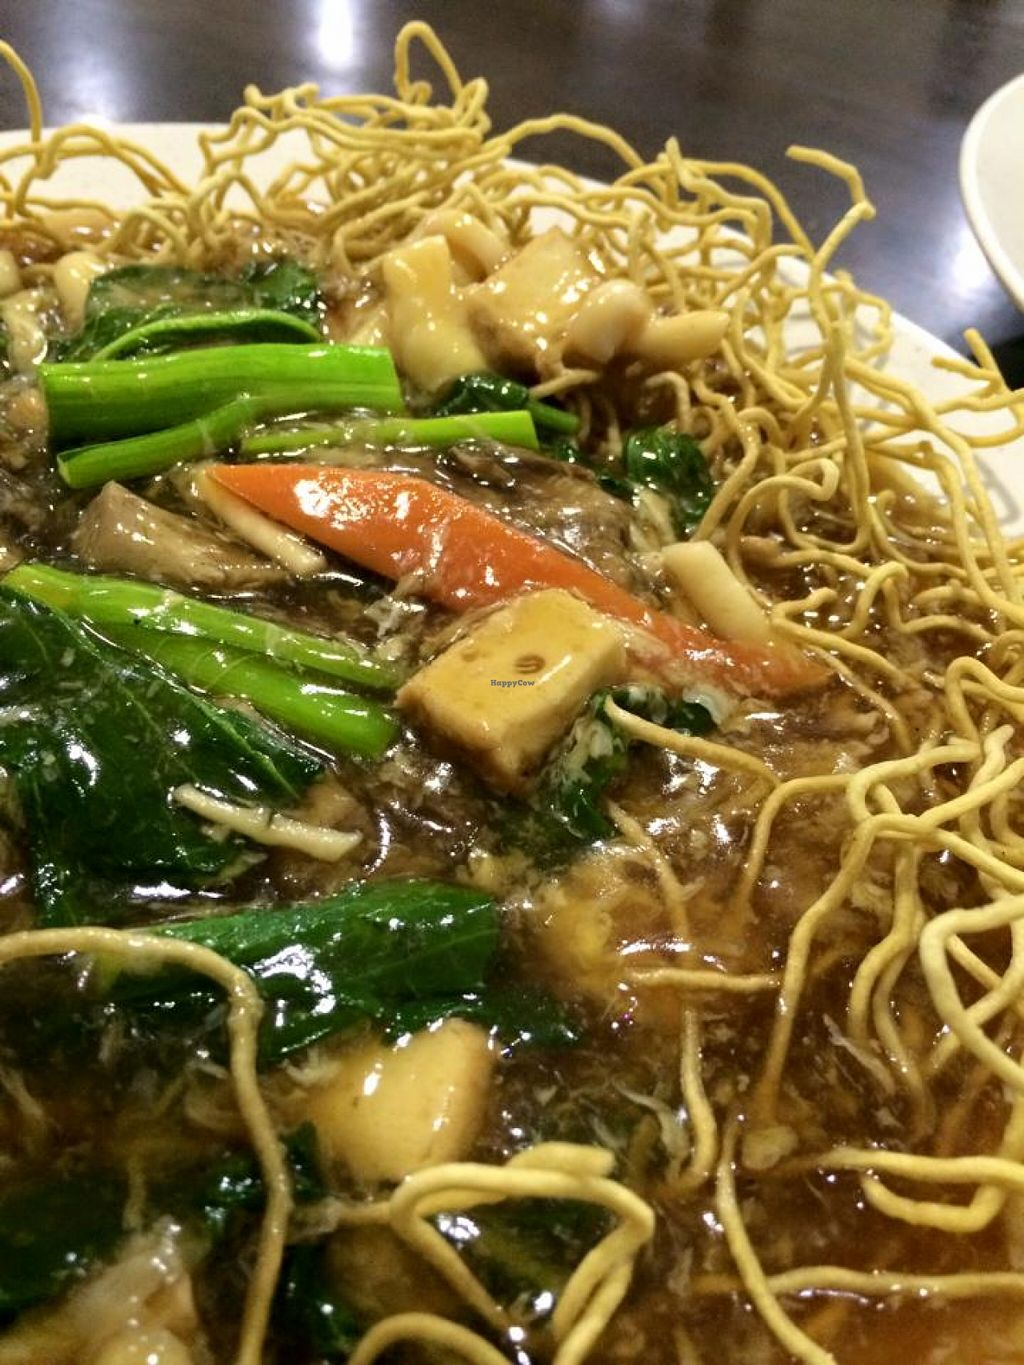 """Photo of Veggie Garden  by <a href=""""/members/profile/community"""">community</a> <br/>fried noodles  <br/> February 22, 2016  - <a href='/contact/abuse/image/69585/137390'>Report</a>"""